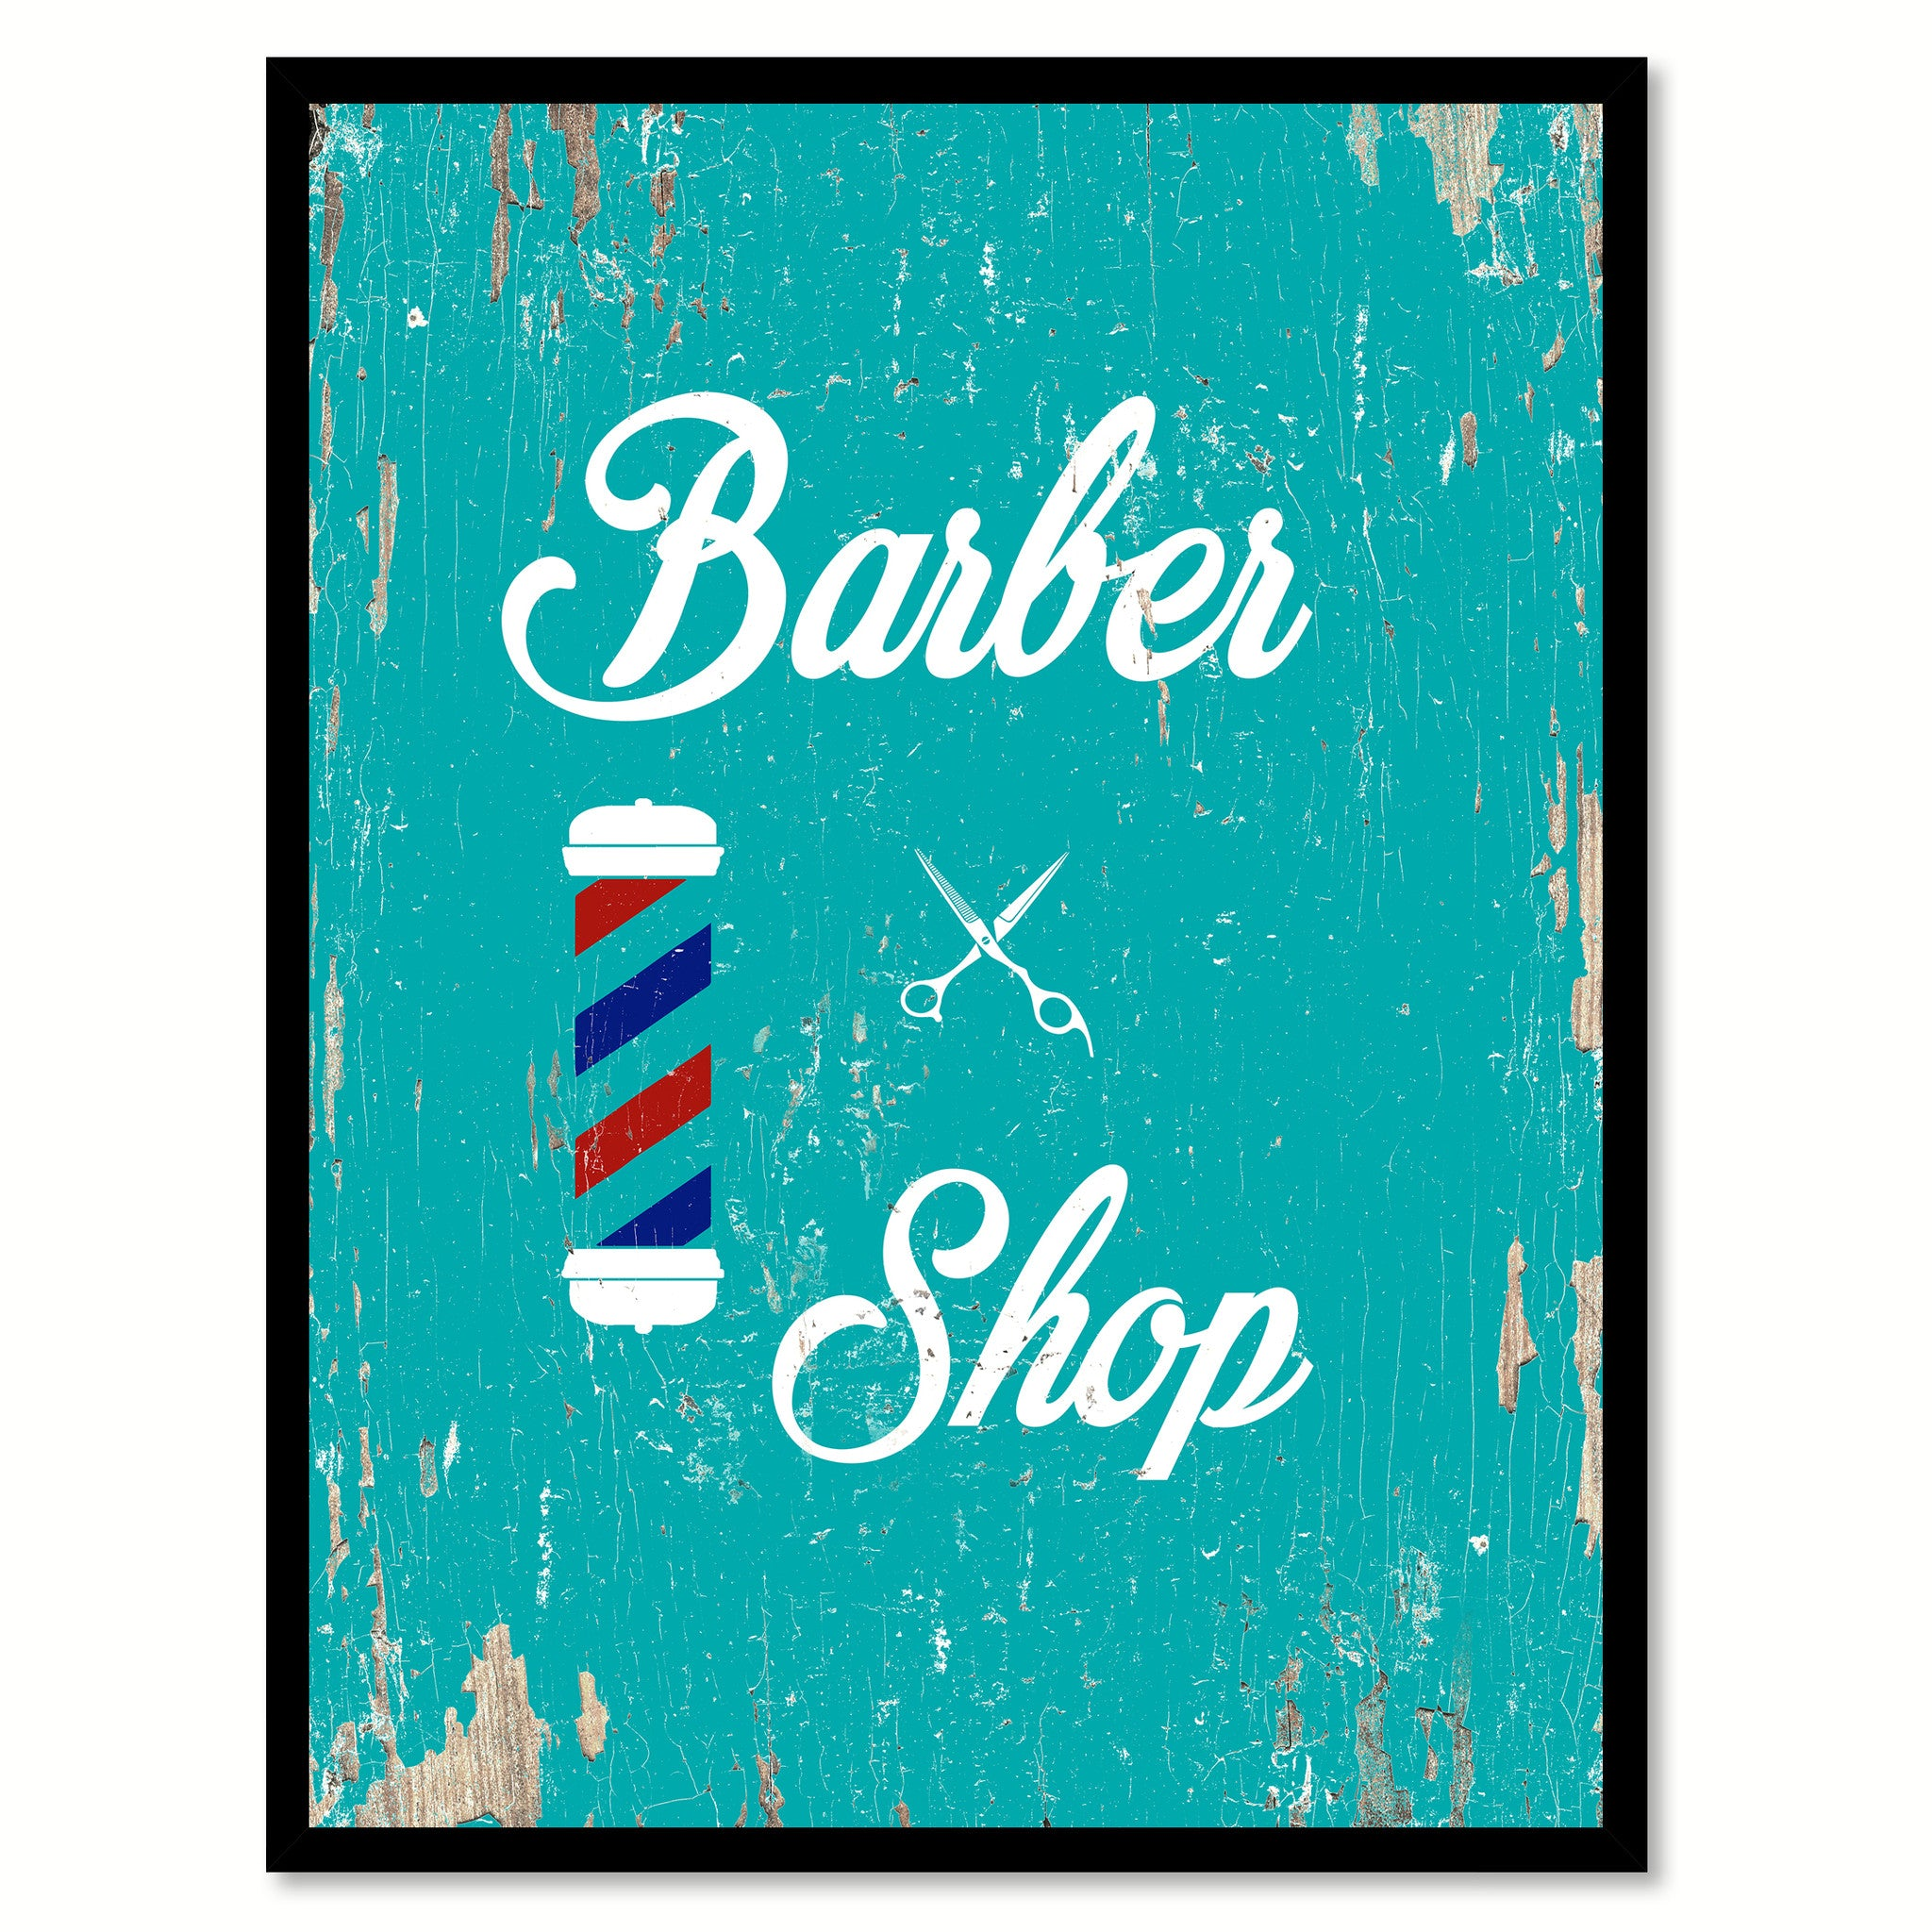 Barber Shop Quote Saying Gift Ideas Home Decor Wall Art 111459